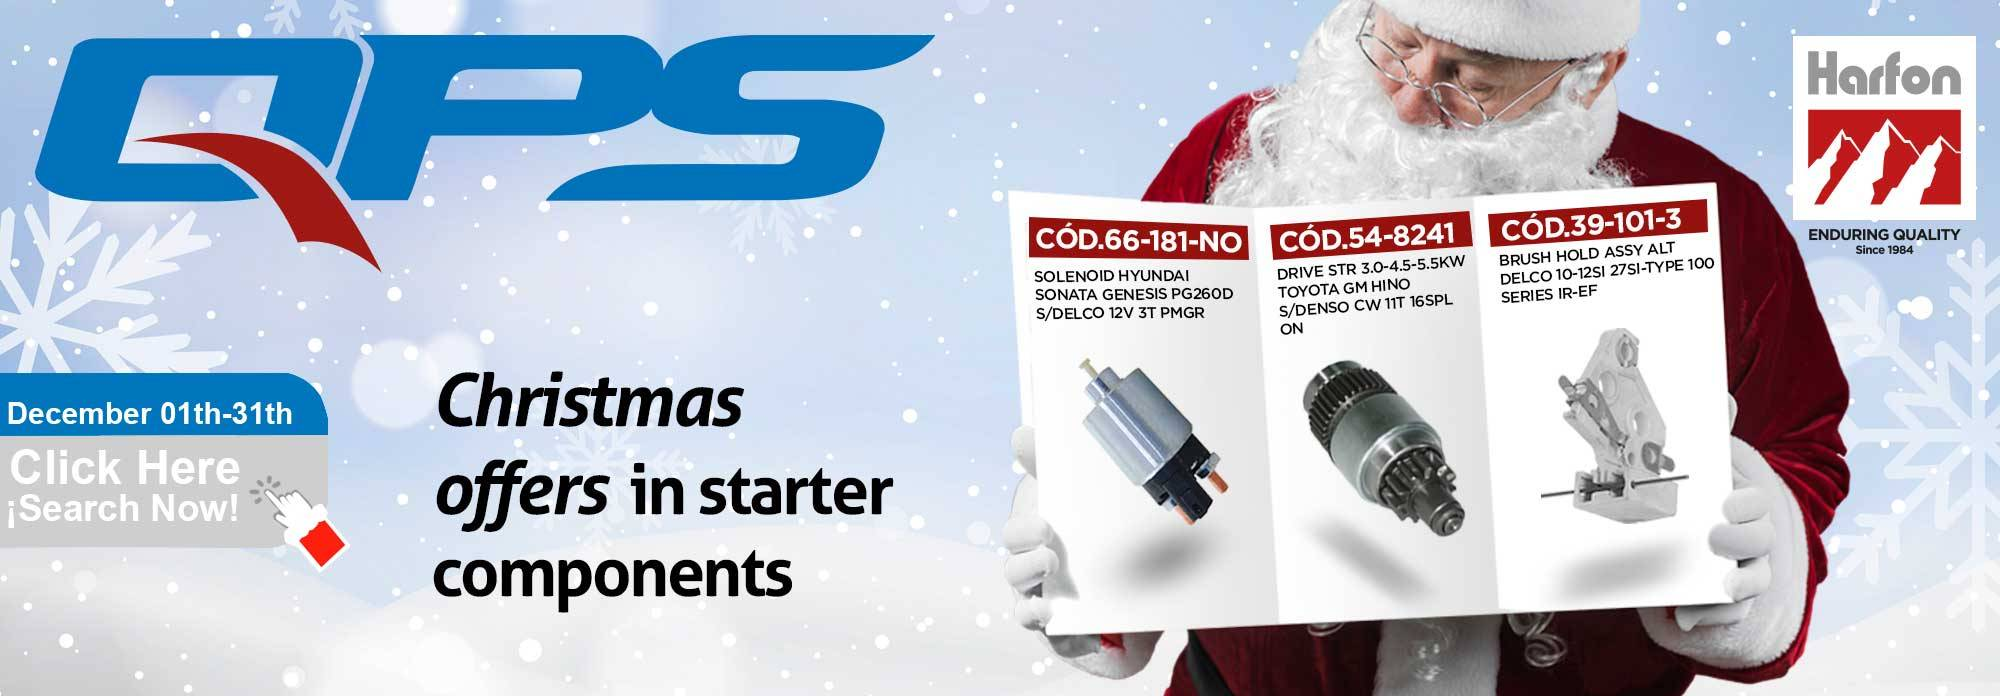 Christmas Offers in Starter Components